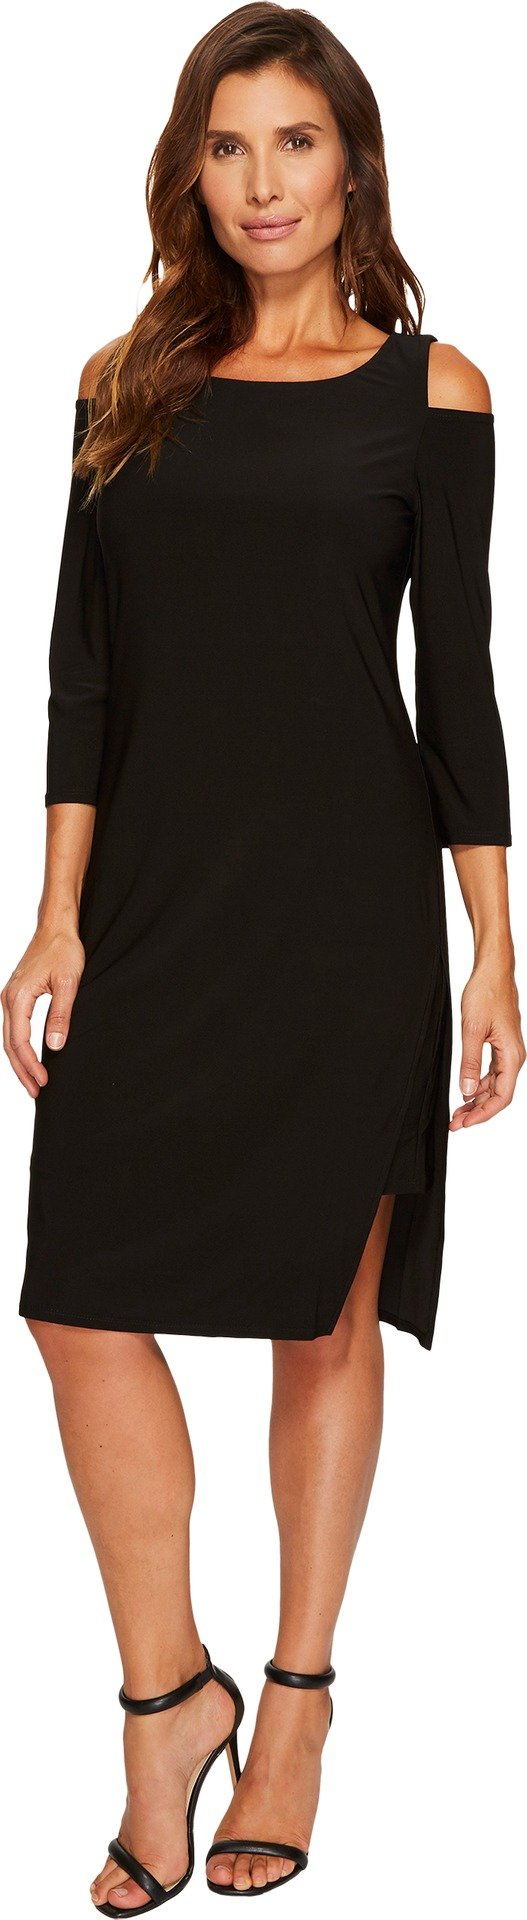 Tribal Women's Travel Pack and Go Cold Shoulder Dress Black XX-Large